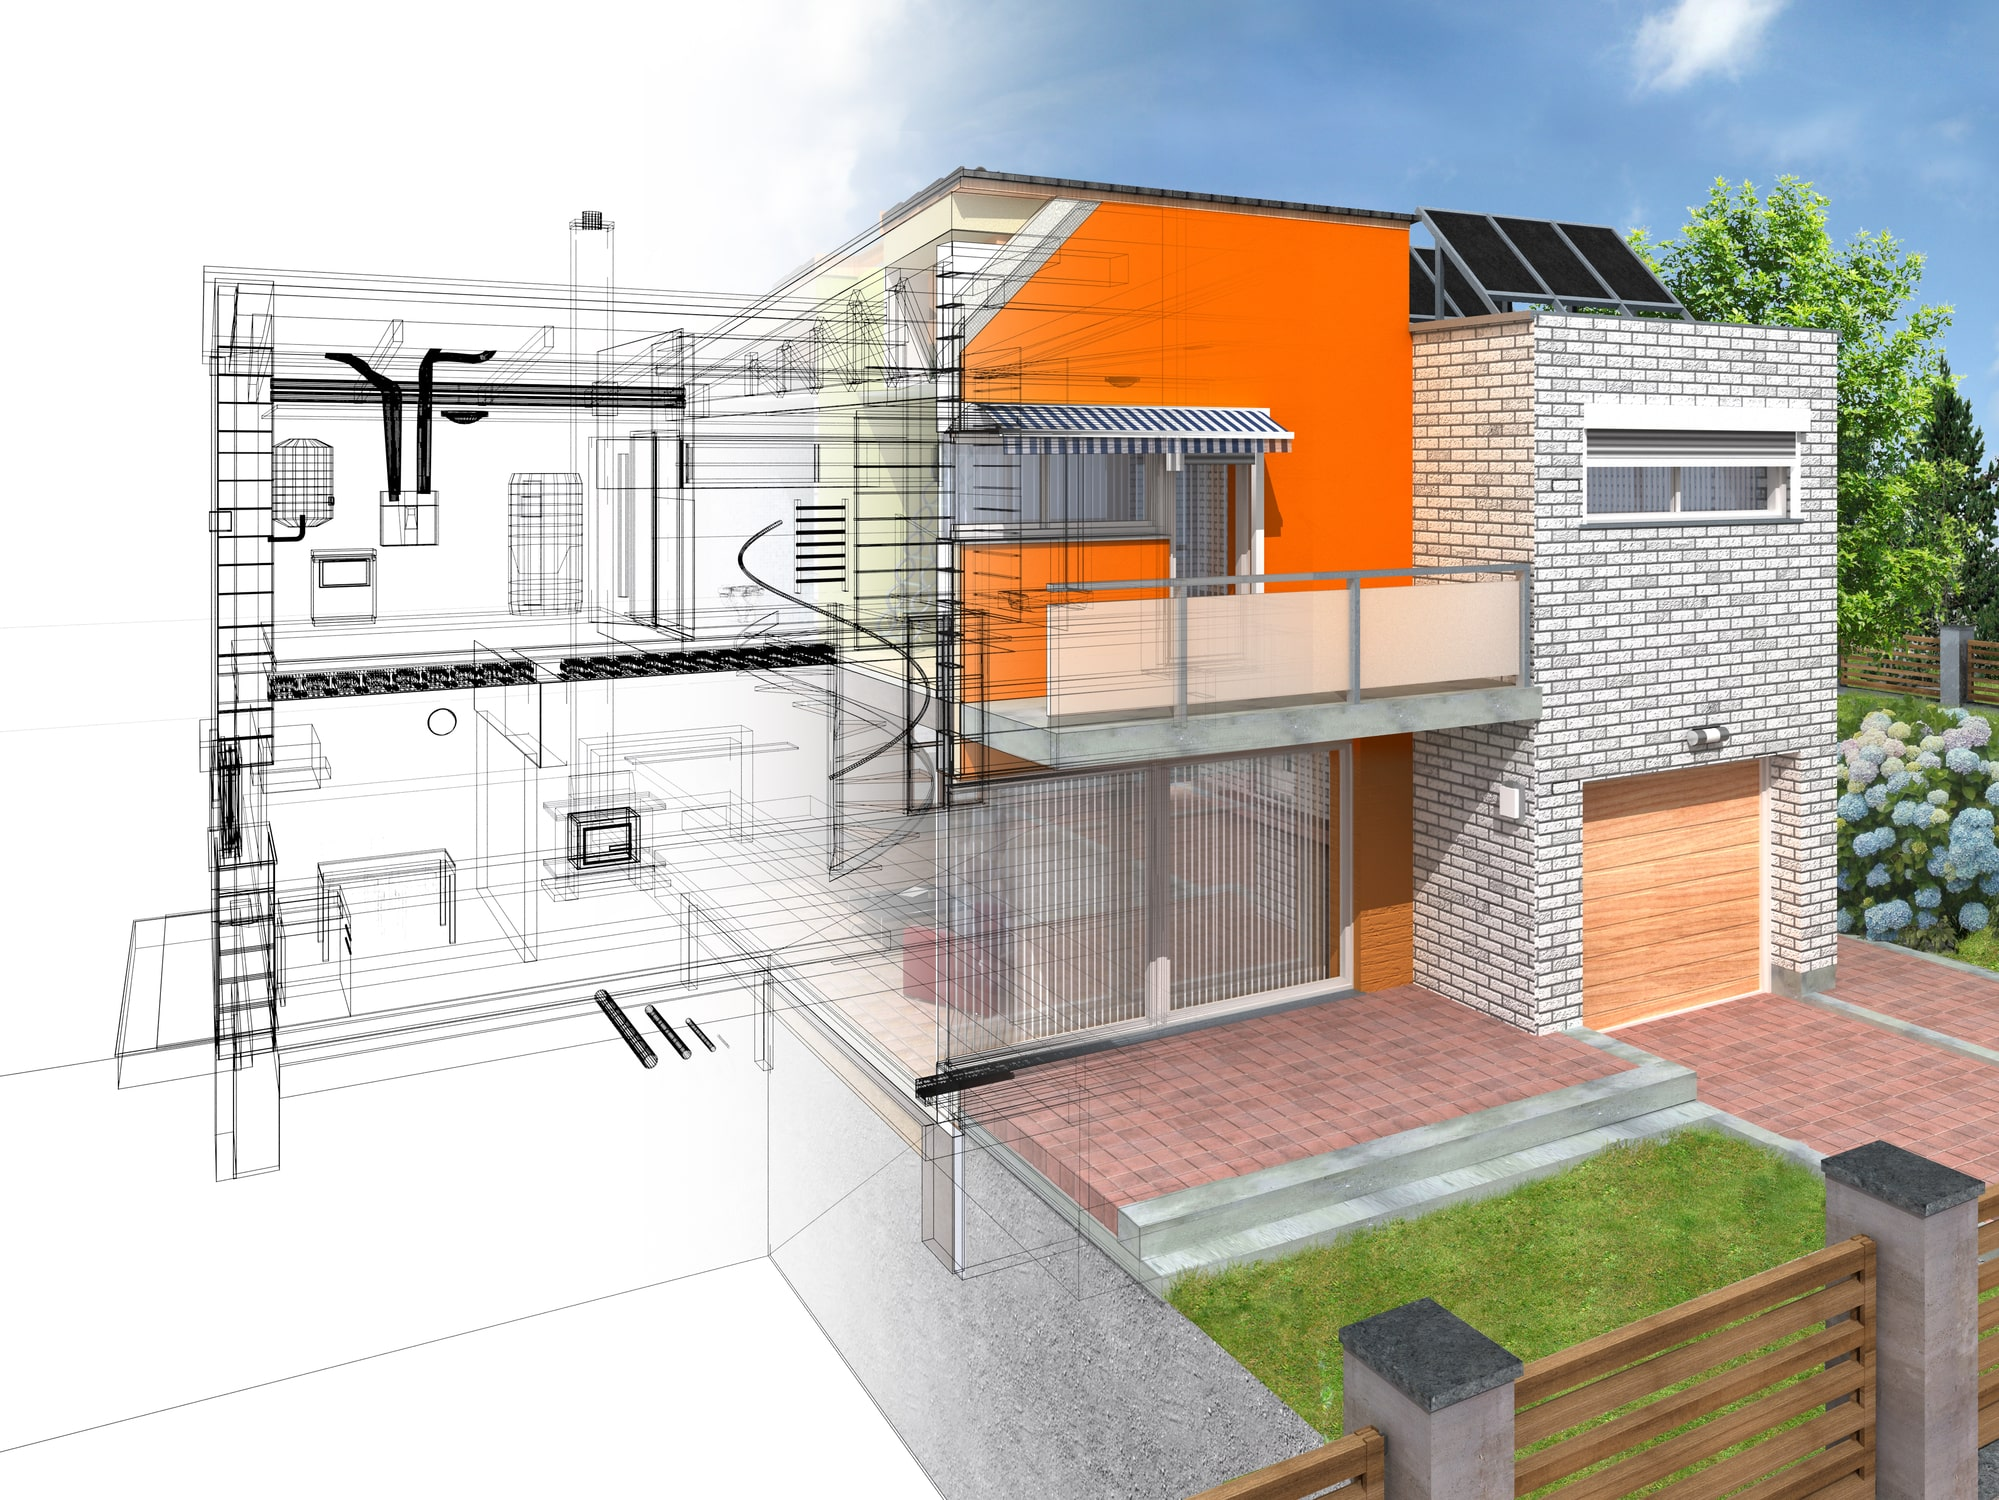 Modern house with planned addition sketch.